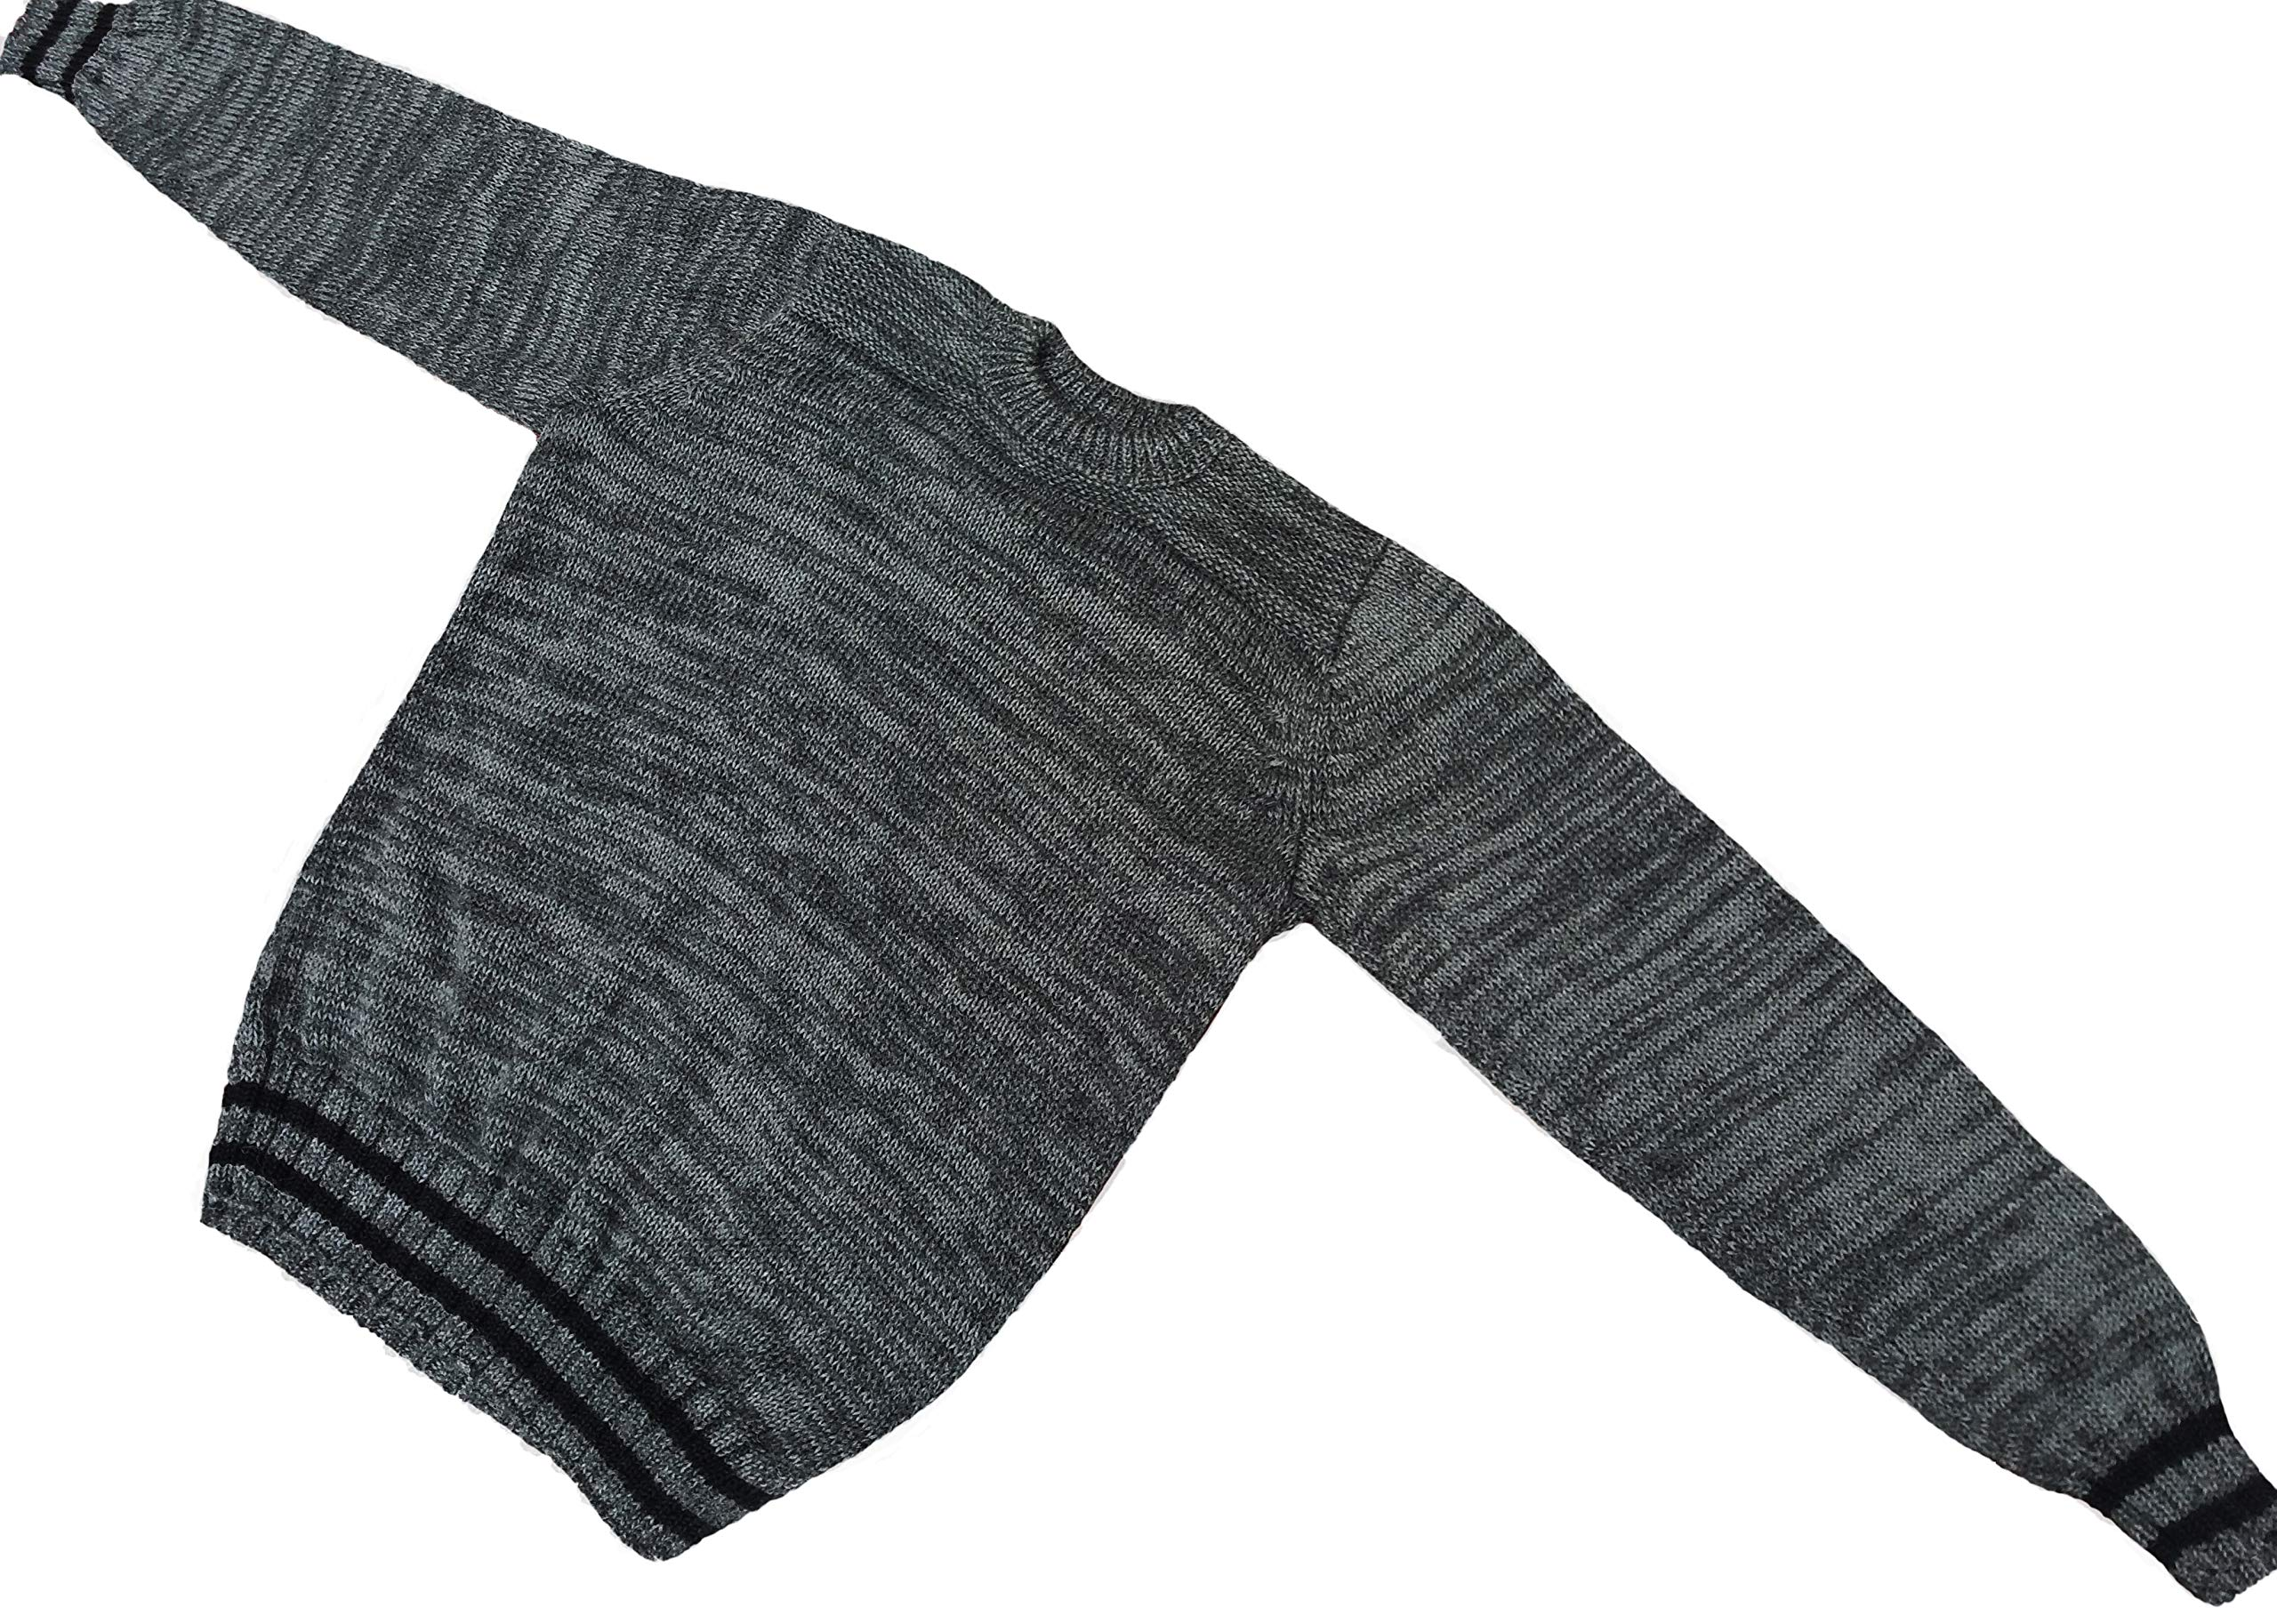 100% Royal Alpaca Sweater, Natural Dark Grey, XXXL